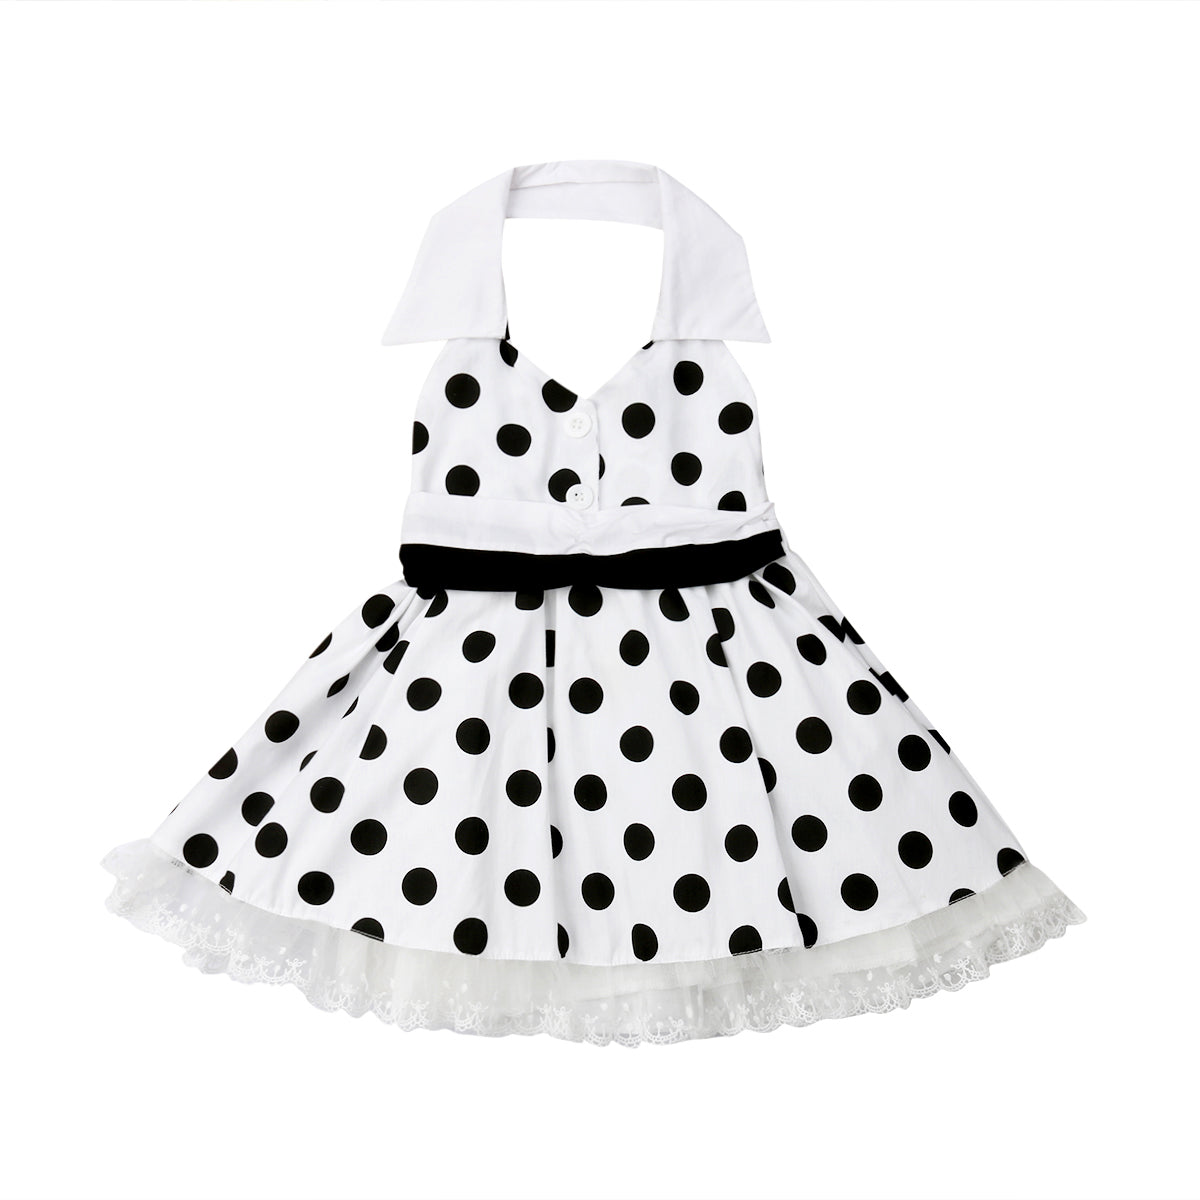 Polka Dot Halter Neck Dress